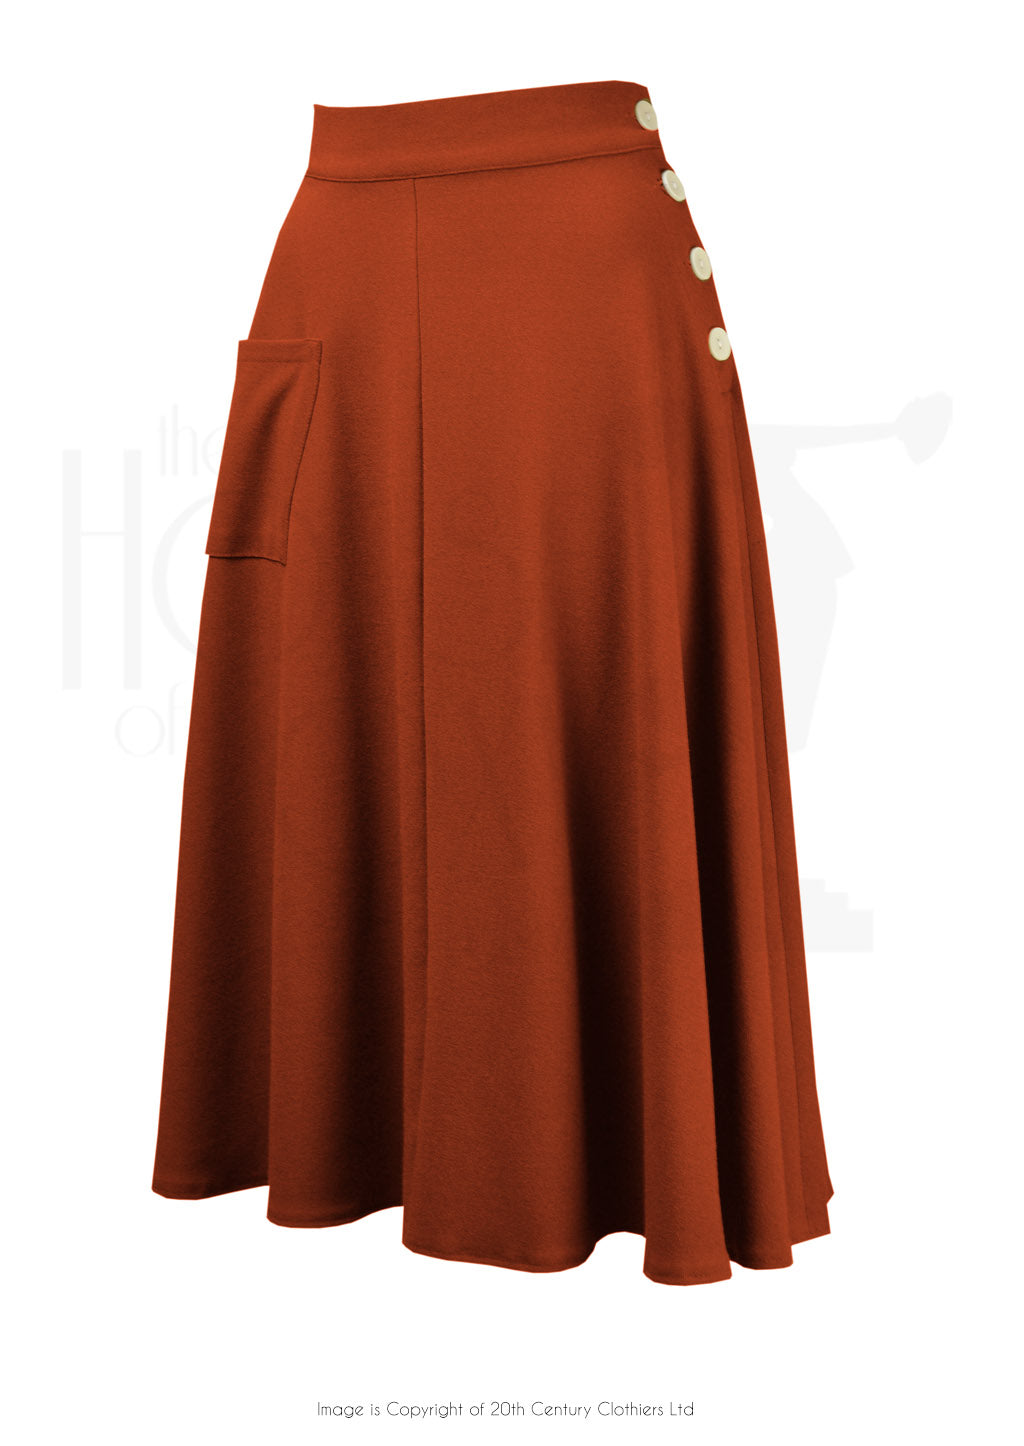 House of Foxy 1940's Whirlaway Skirt in Rust